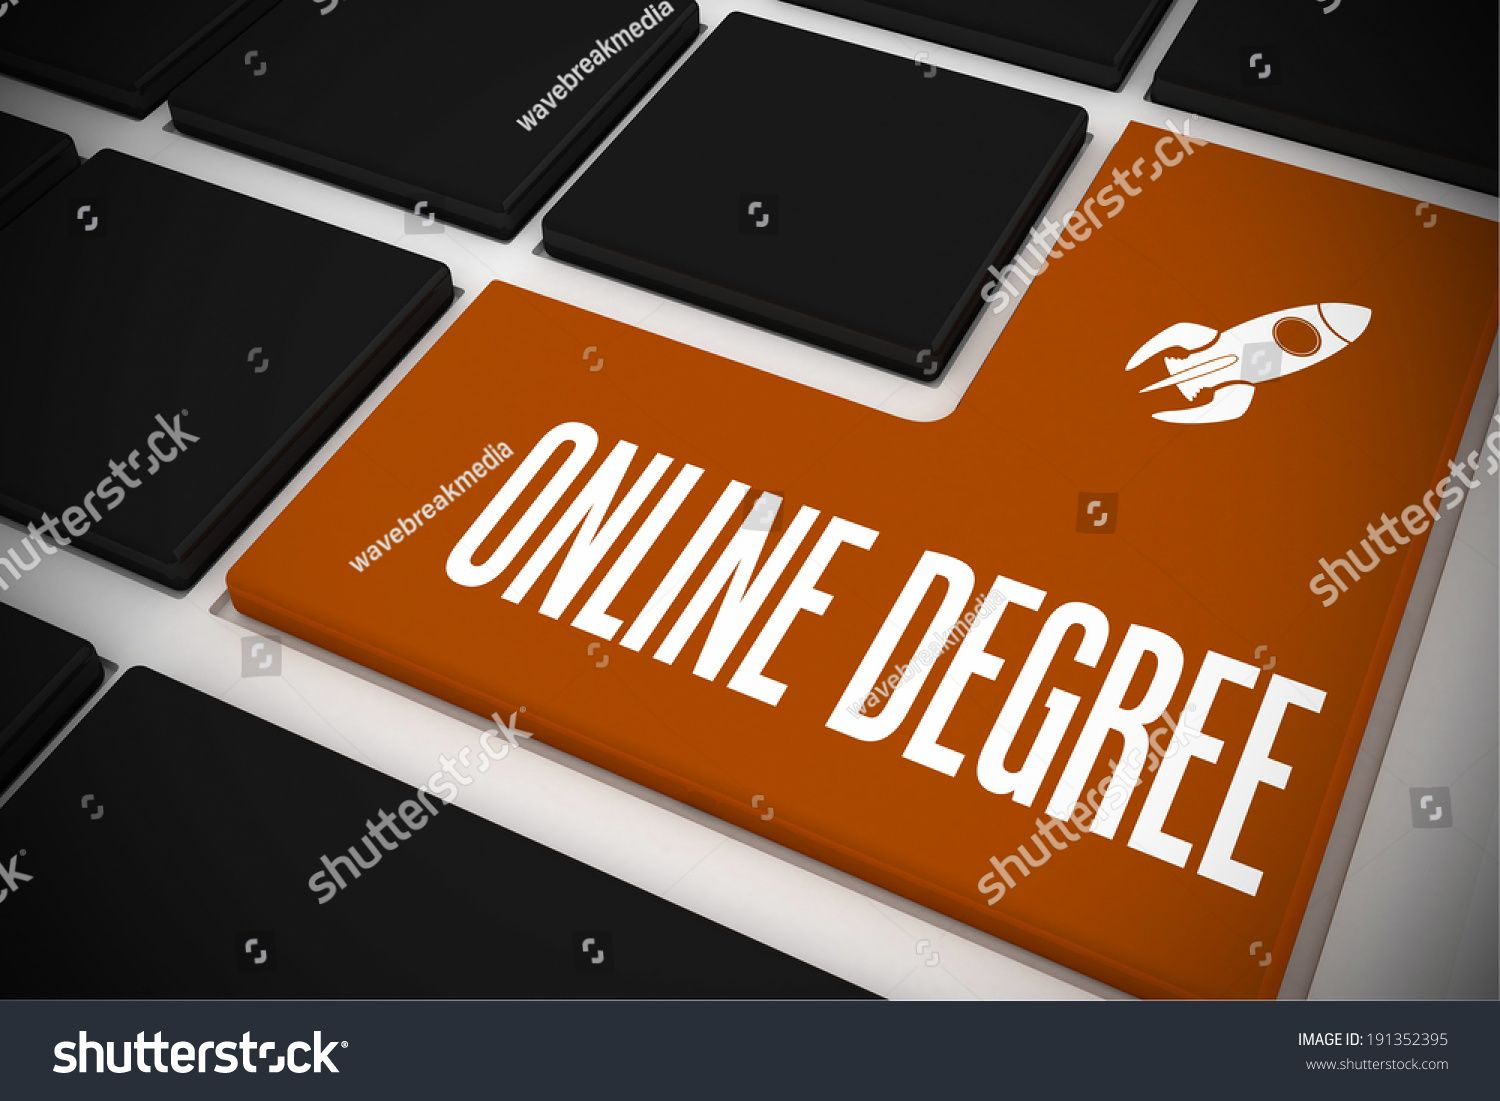 The word online degree and rocket ship on black keyboard with orange key